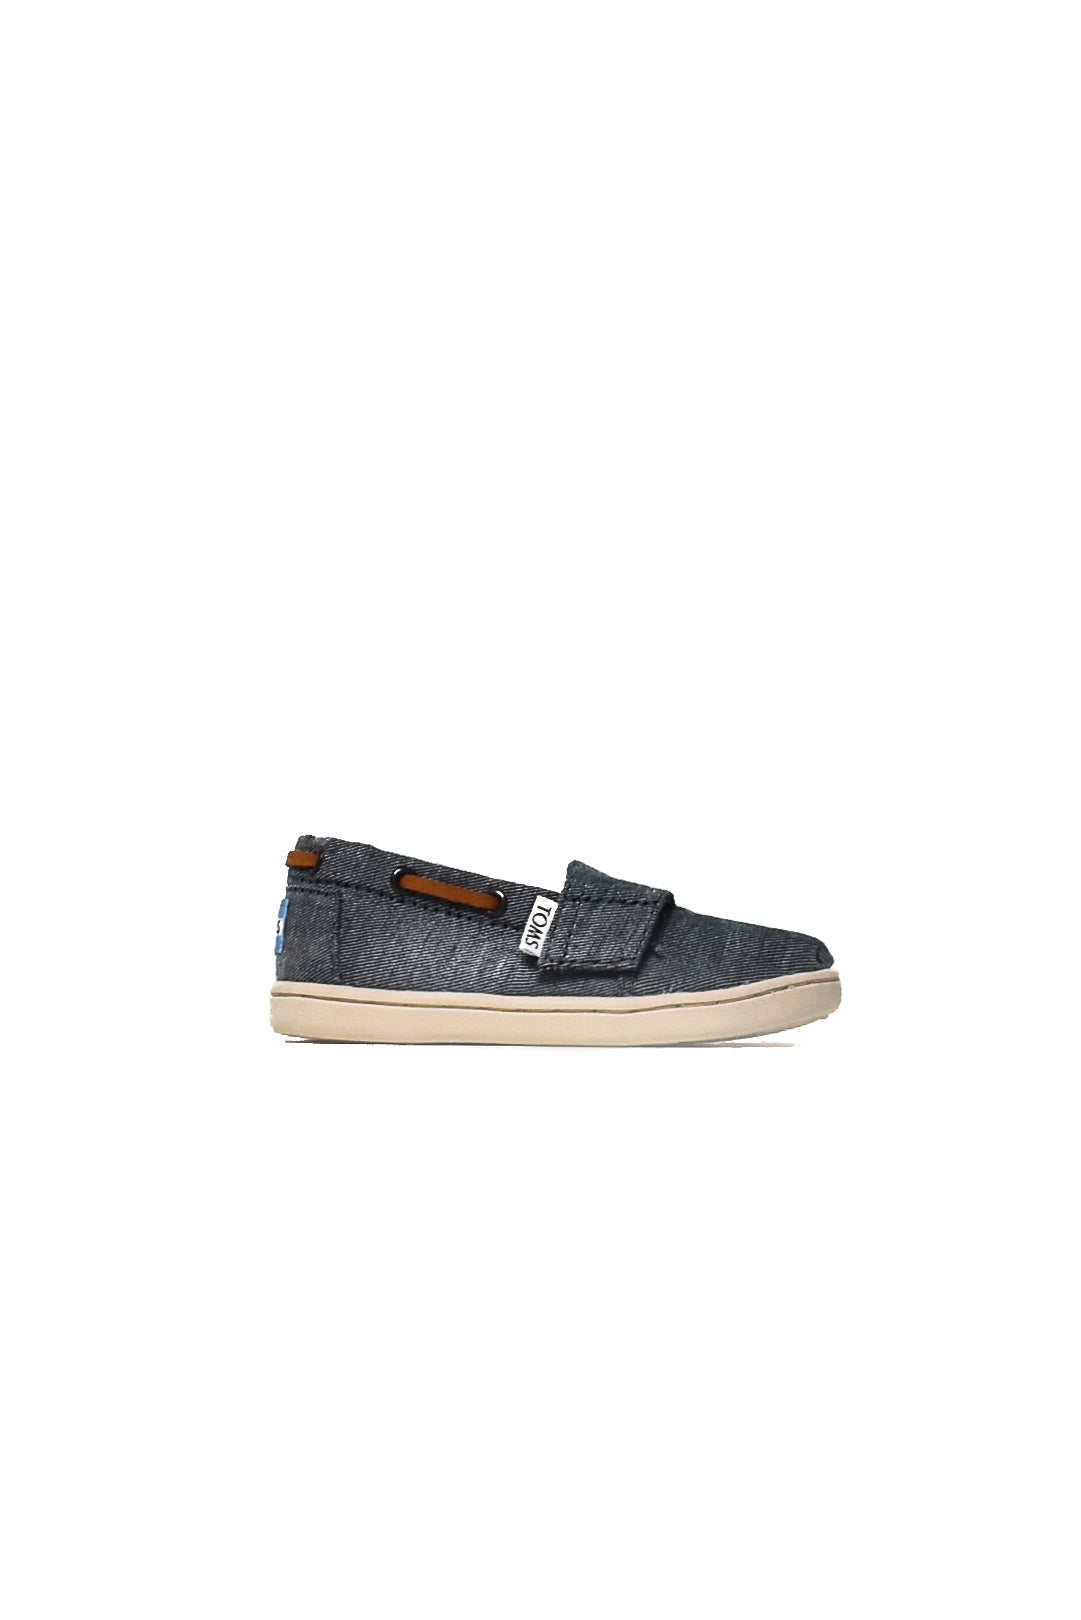 10006966 Toms Baby~ Shoes EU 23.5 at Retykle